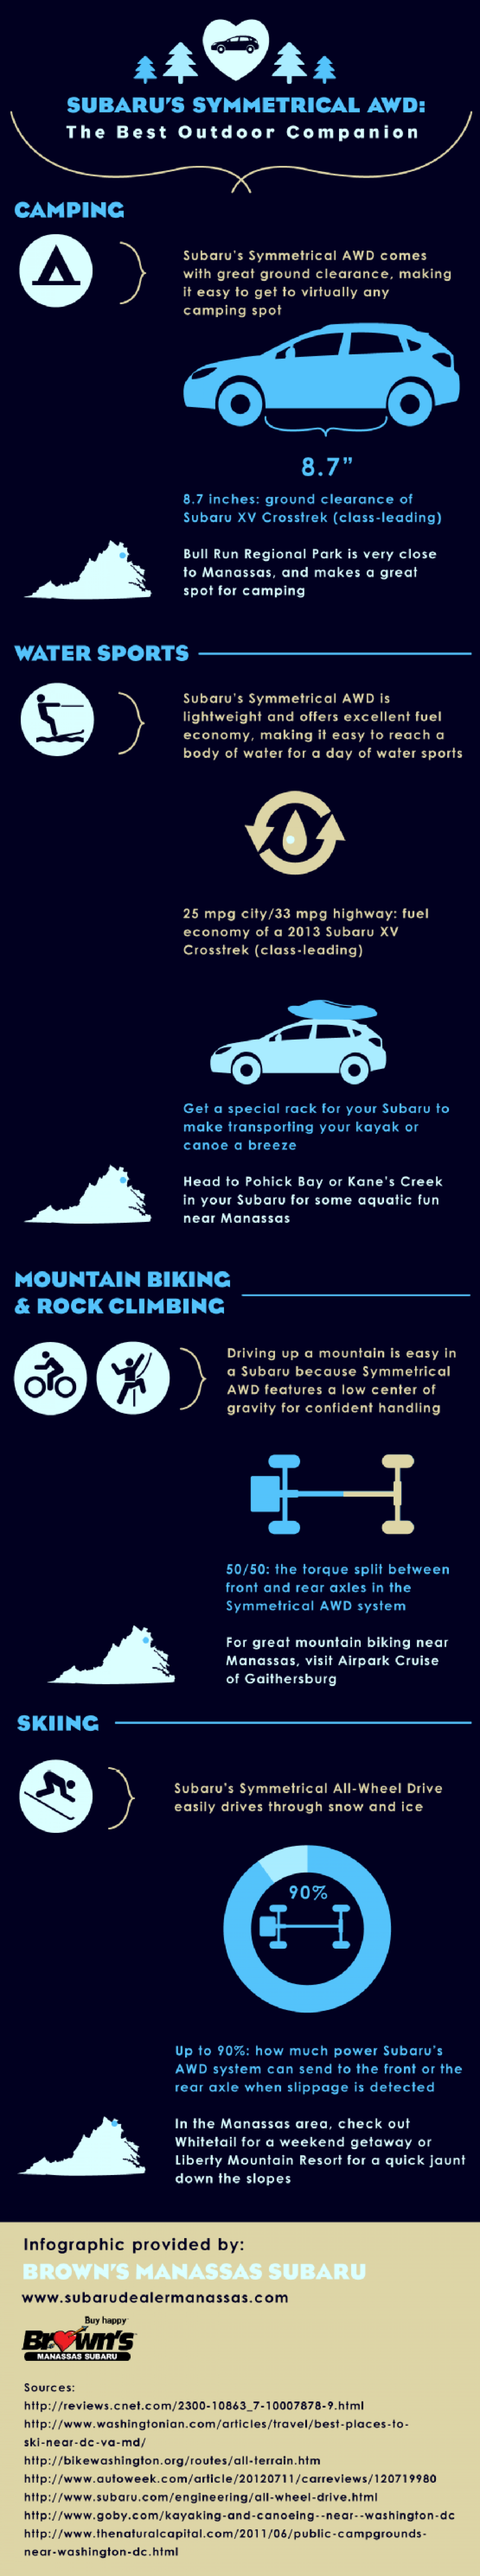 Subaru's Symmetrical AWD: The Best Outdoor Companion  Infographic